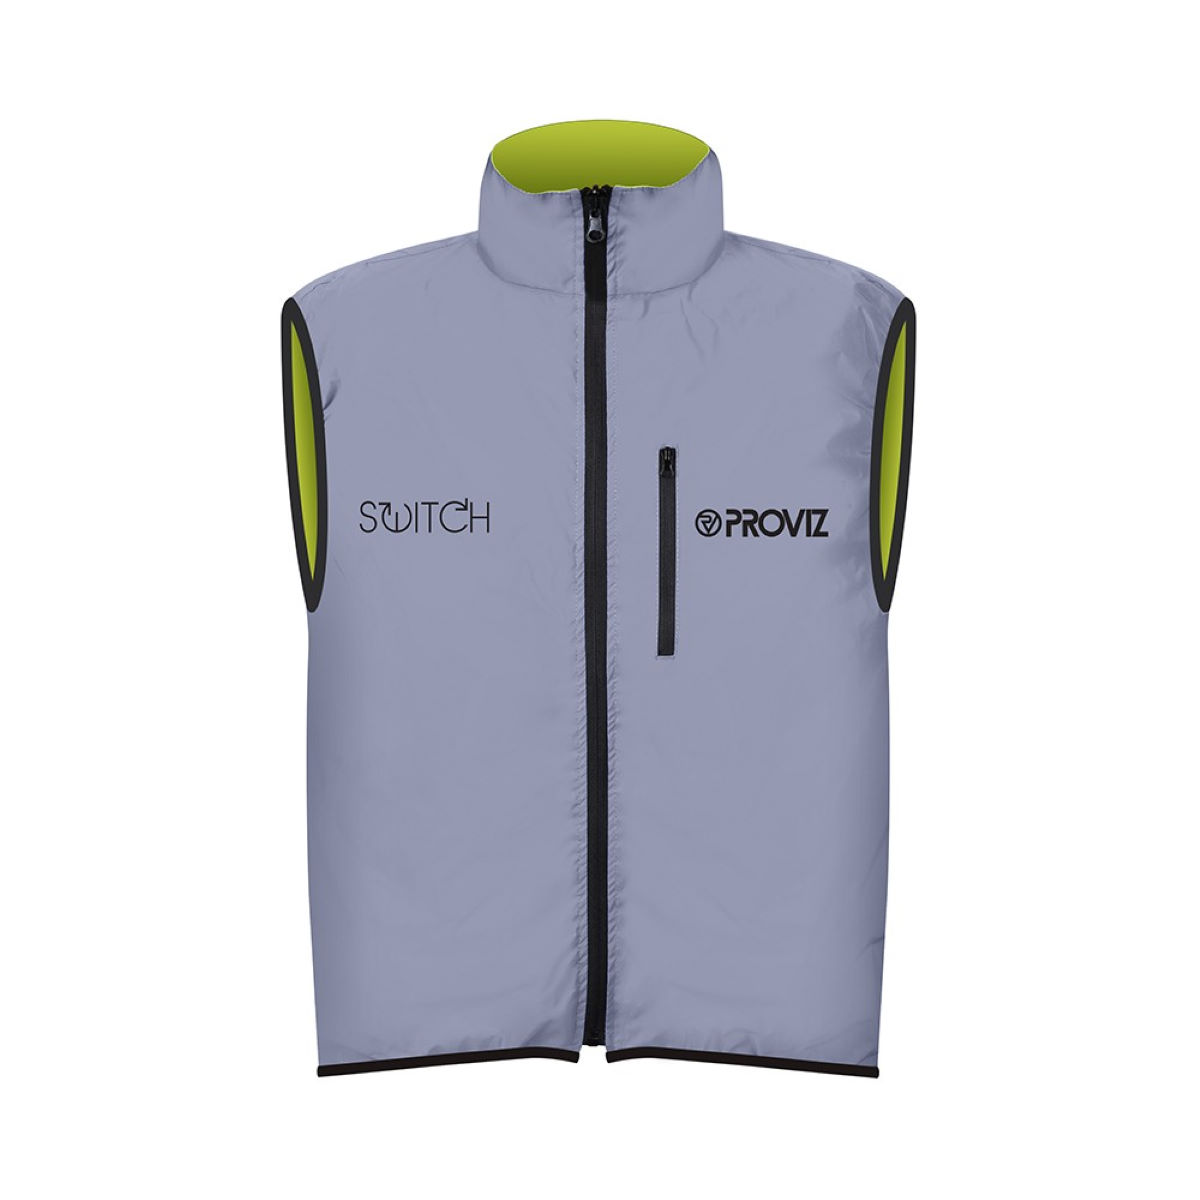 Gilet Proviz Switch (sans manches) - Small Reflective/Yellow